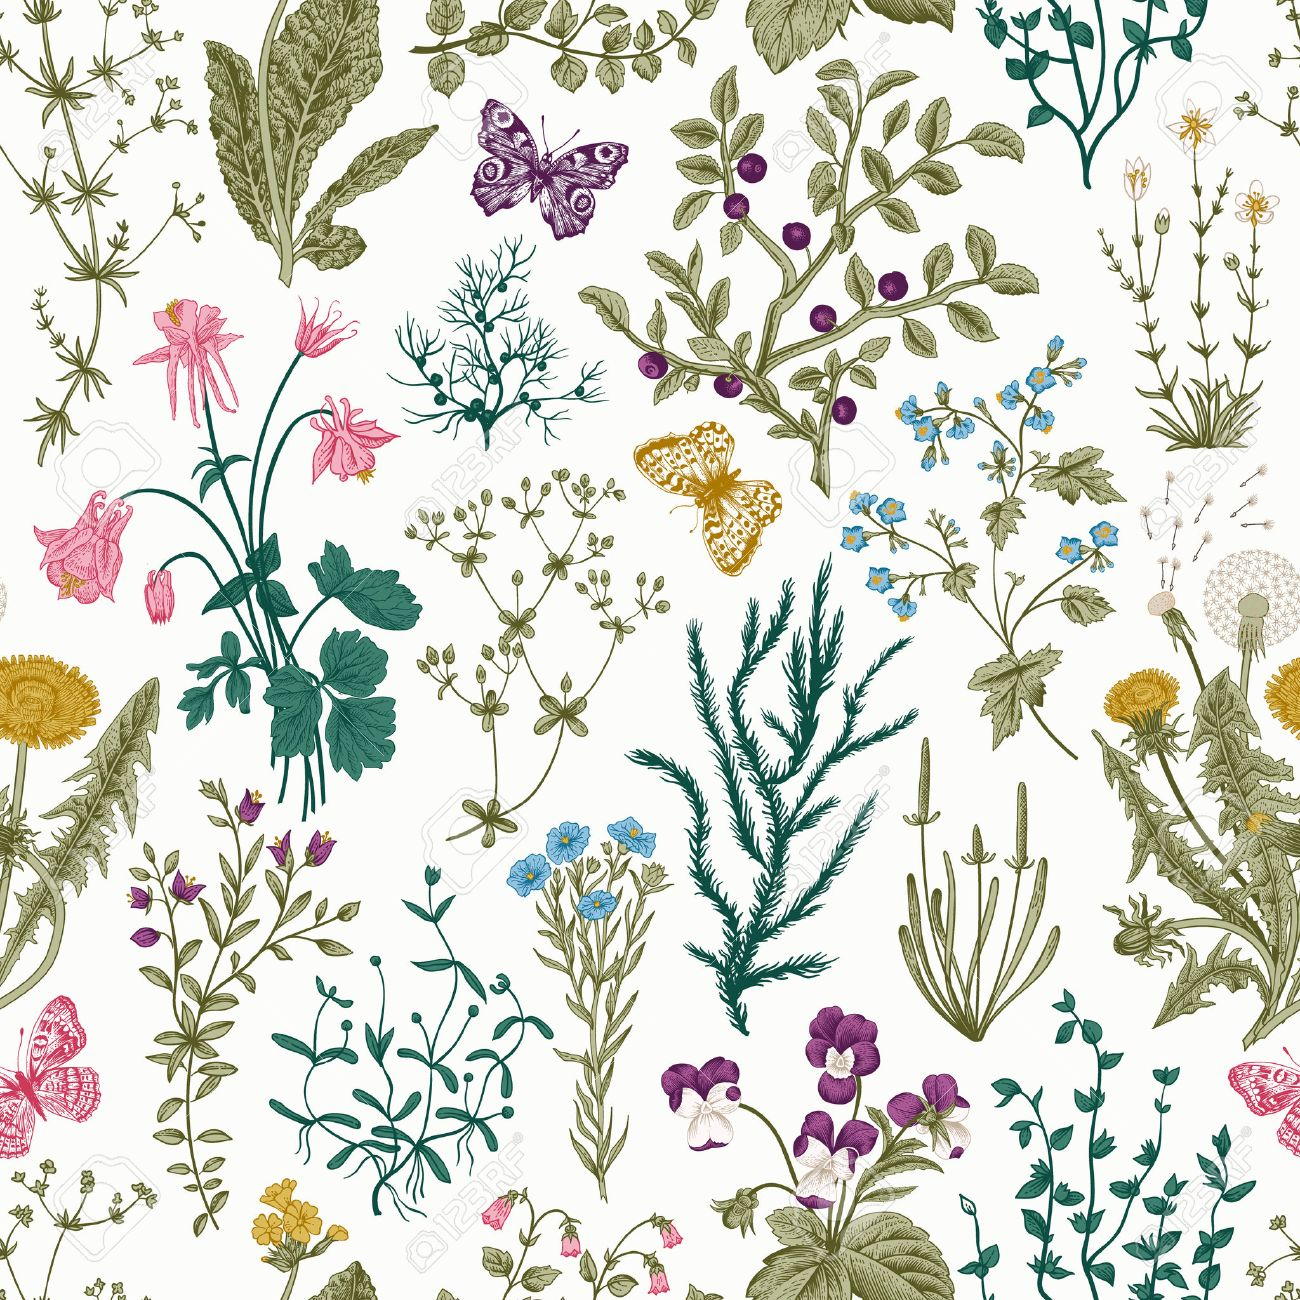 Vector vintage seamless floral pattern. Herbs and wild flowers. Botanical Illustration engraving style. Colorful - 53275966